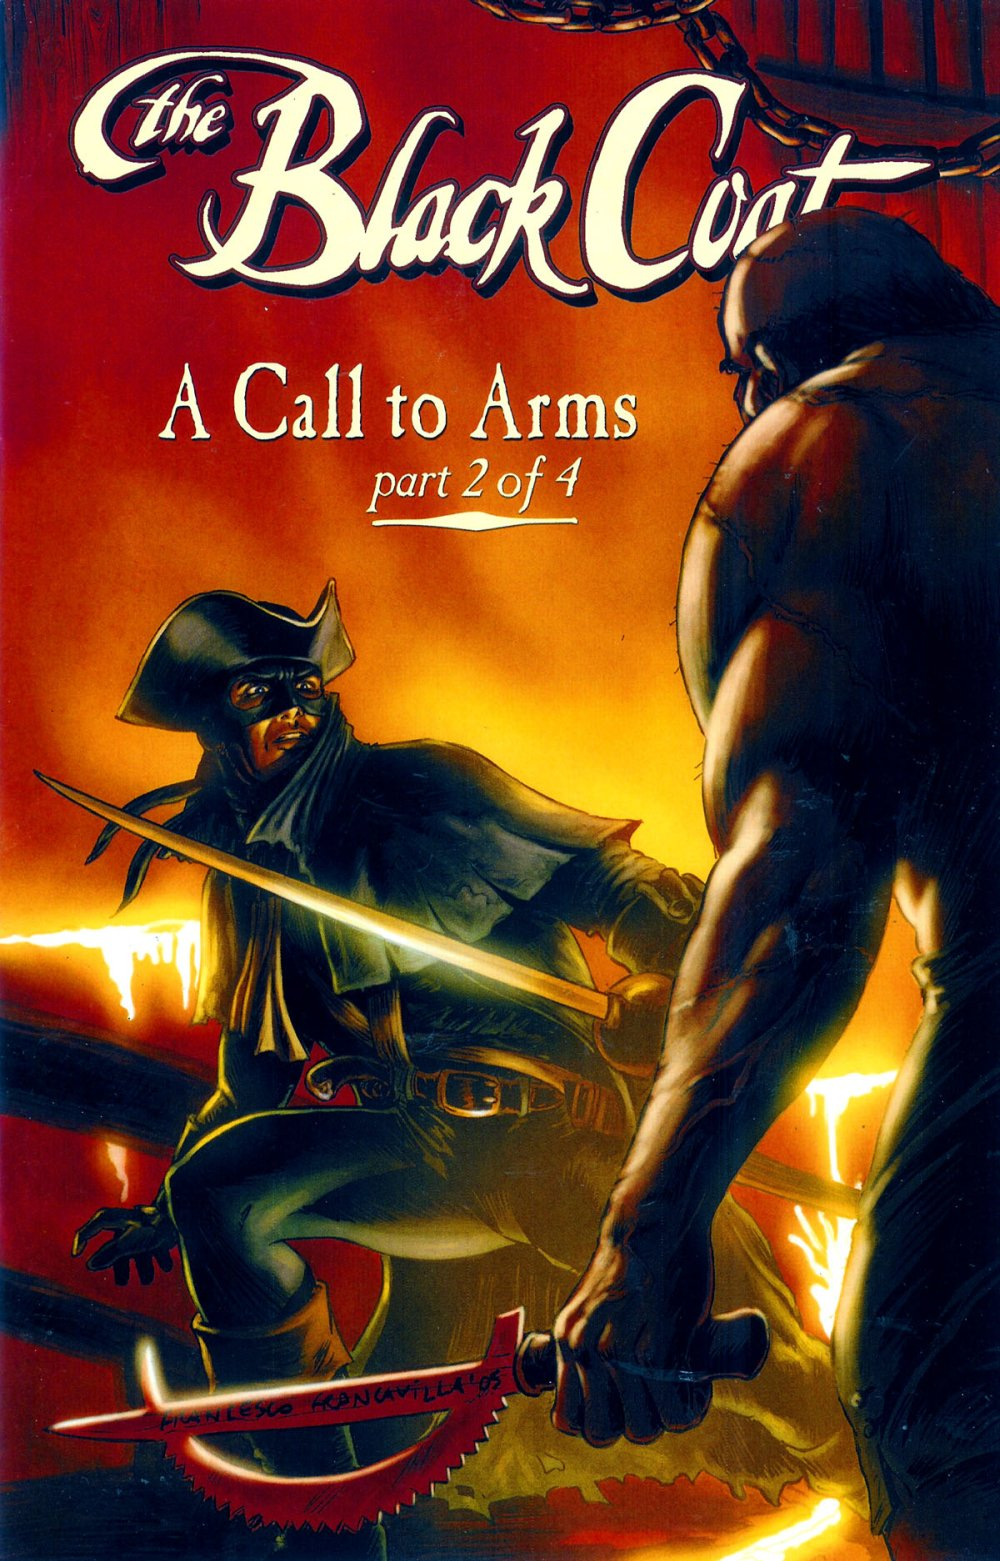 Black Coat- A Call To Arms [UNKNOWN] Mini 1 0002.jpg